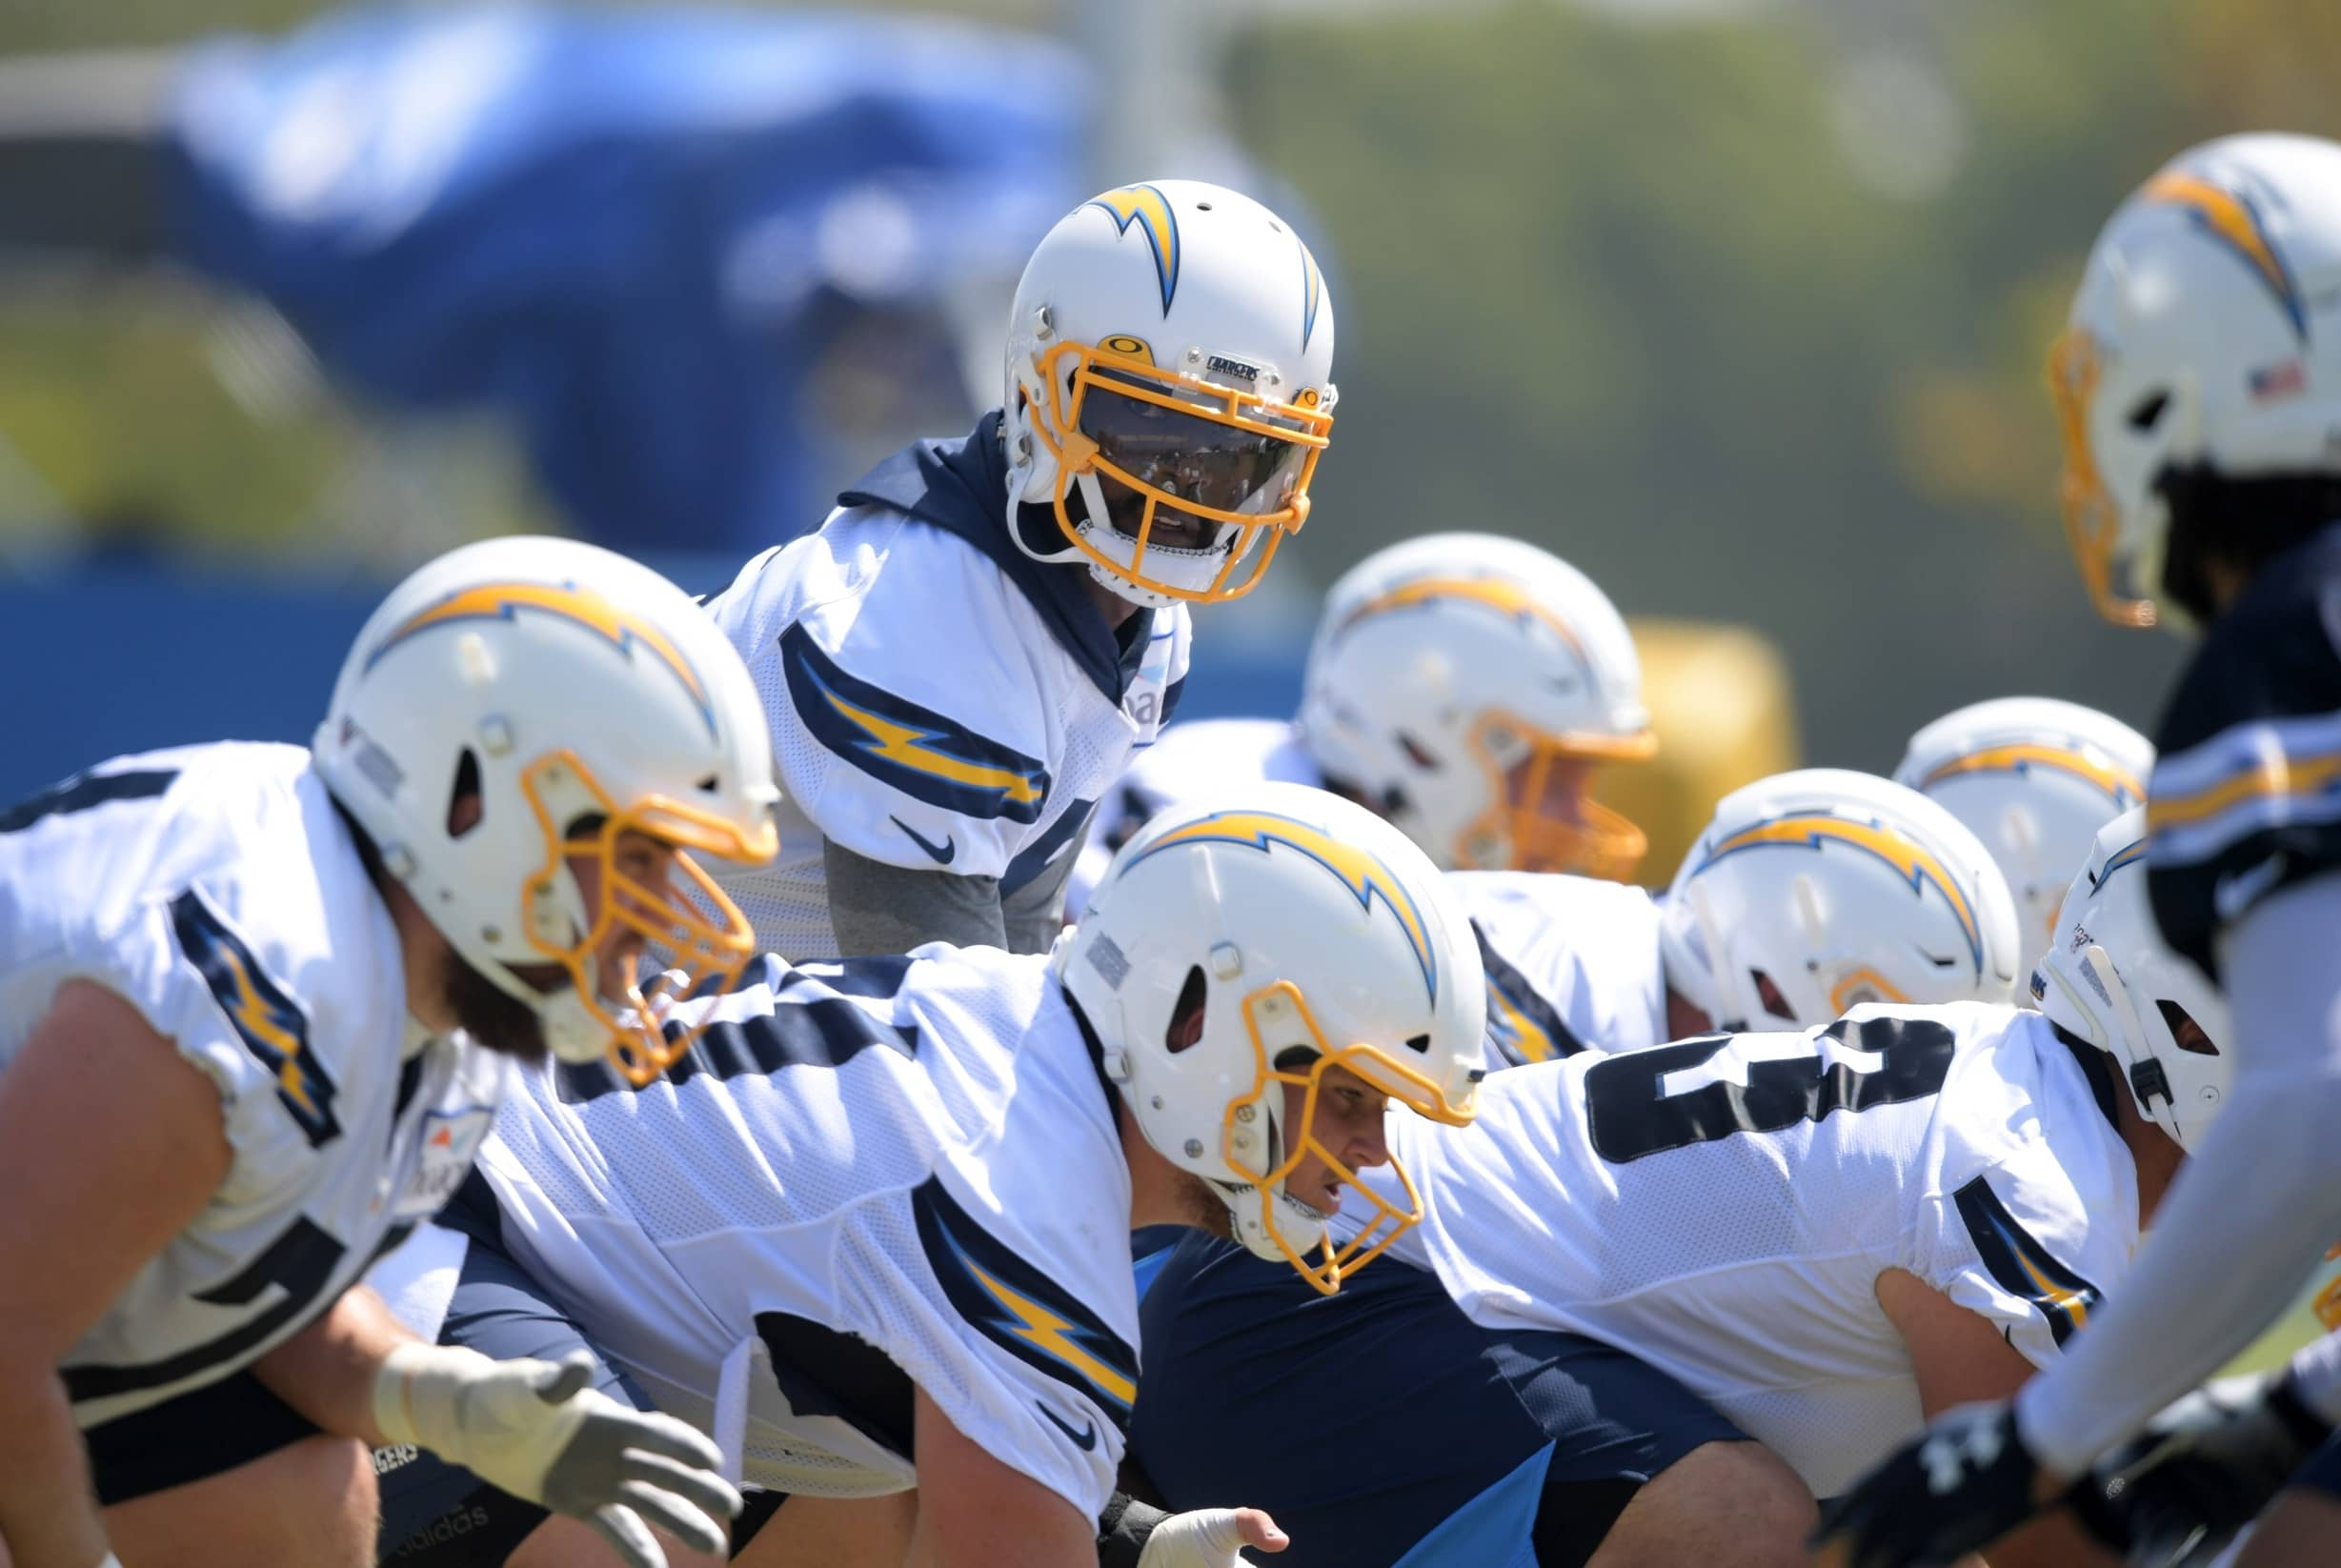 Los Angeles Chargers QB Tyrod Taylor during training camp